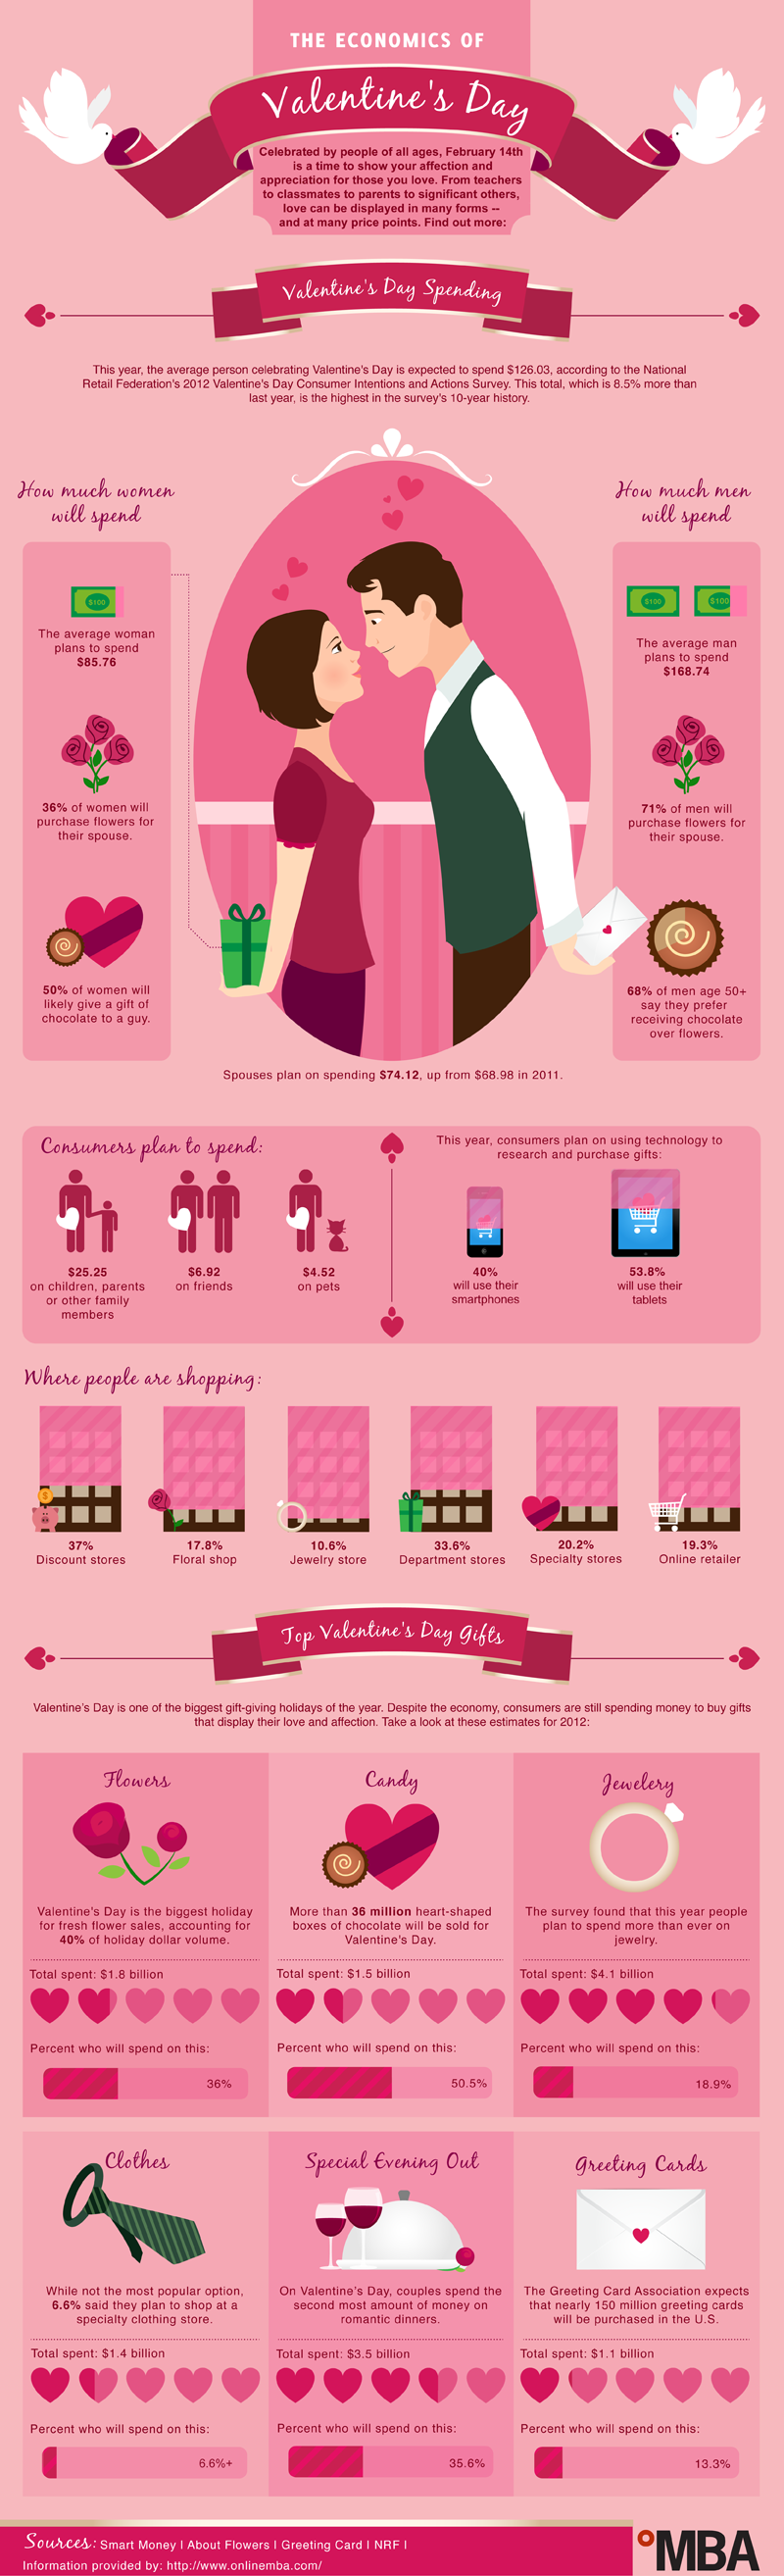 Economics of Valentine's Day